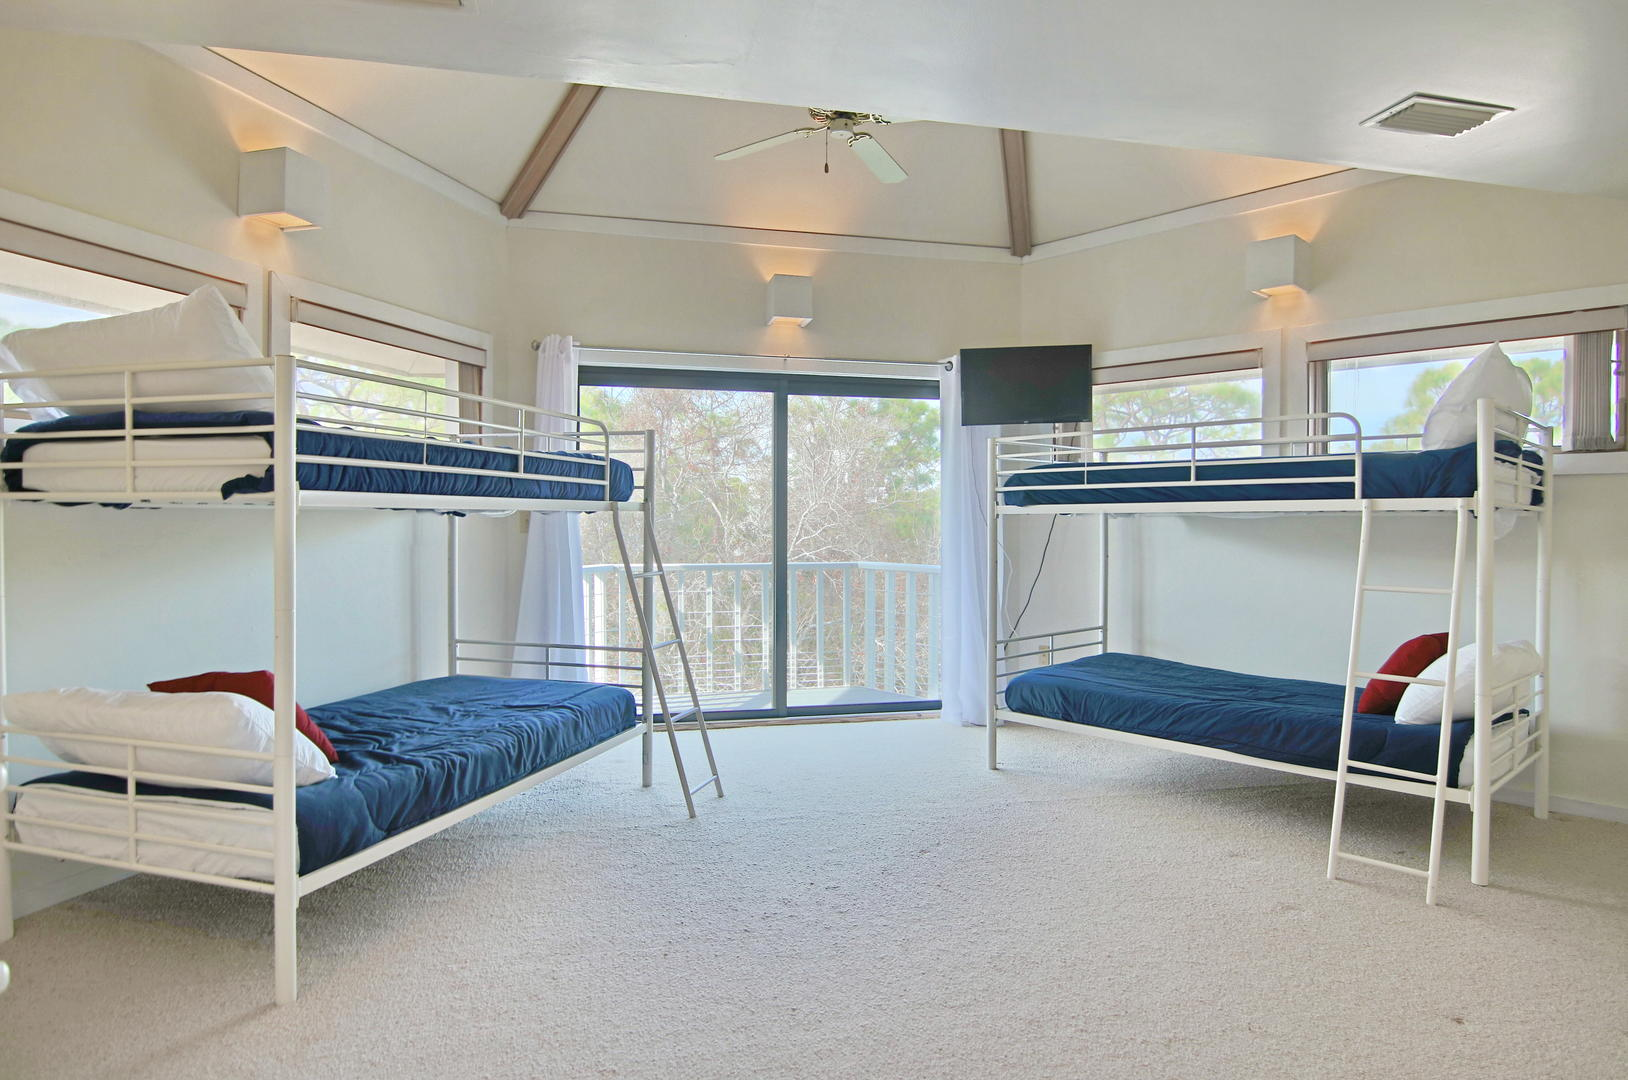 This bunk bedroom provides extra play space for the children in the family.